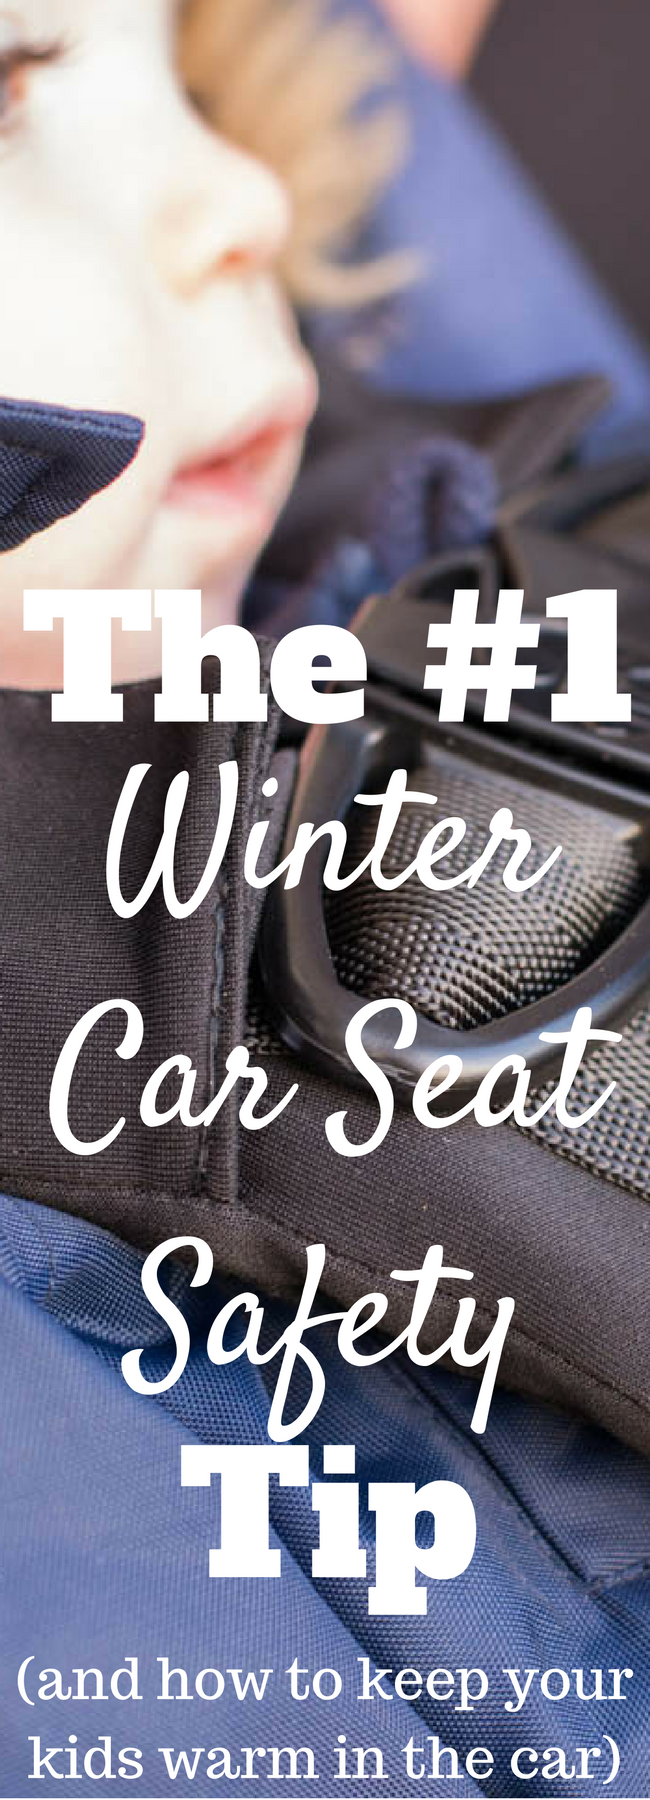 Keep your kids safe this winter with these winter car seat safety tips - as well as the best (and safest) ways to keep your child warm in the car, such as a car seat poncho.